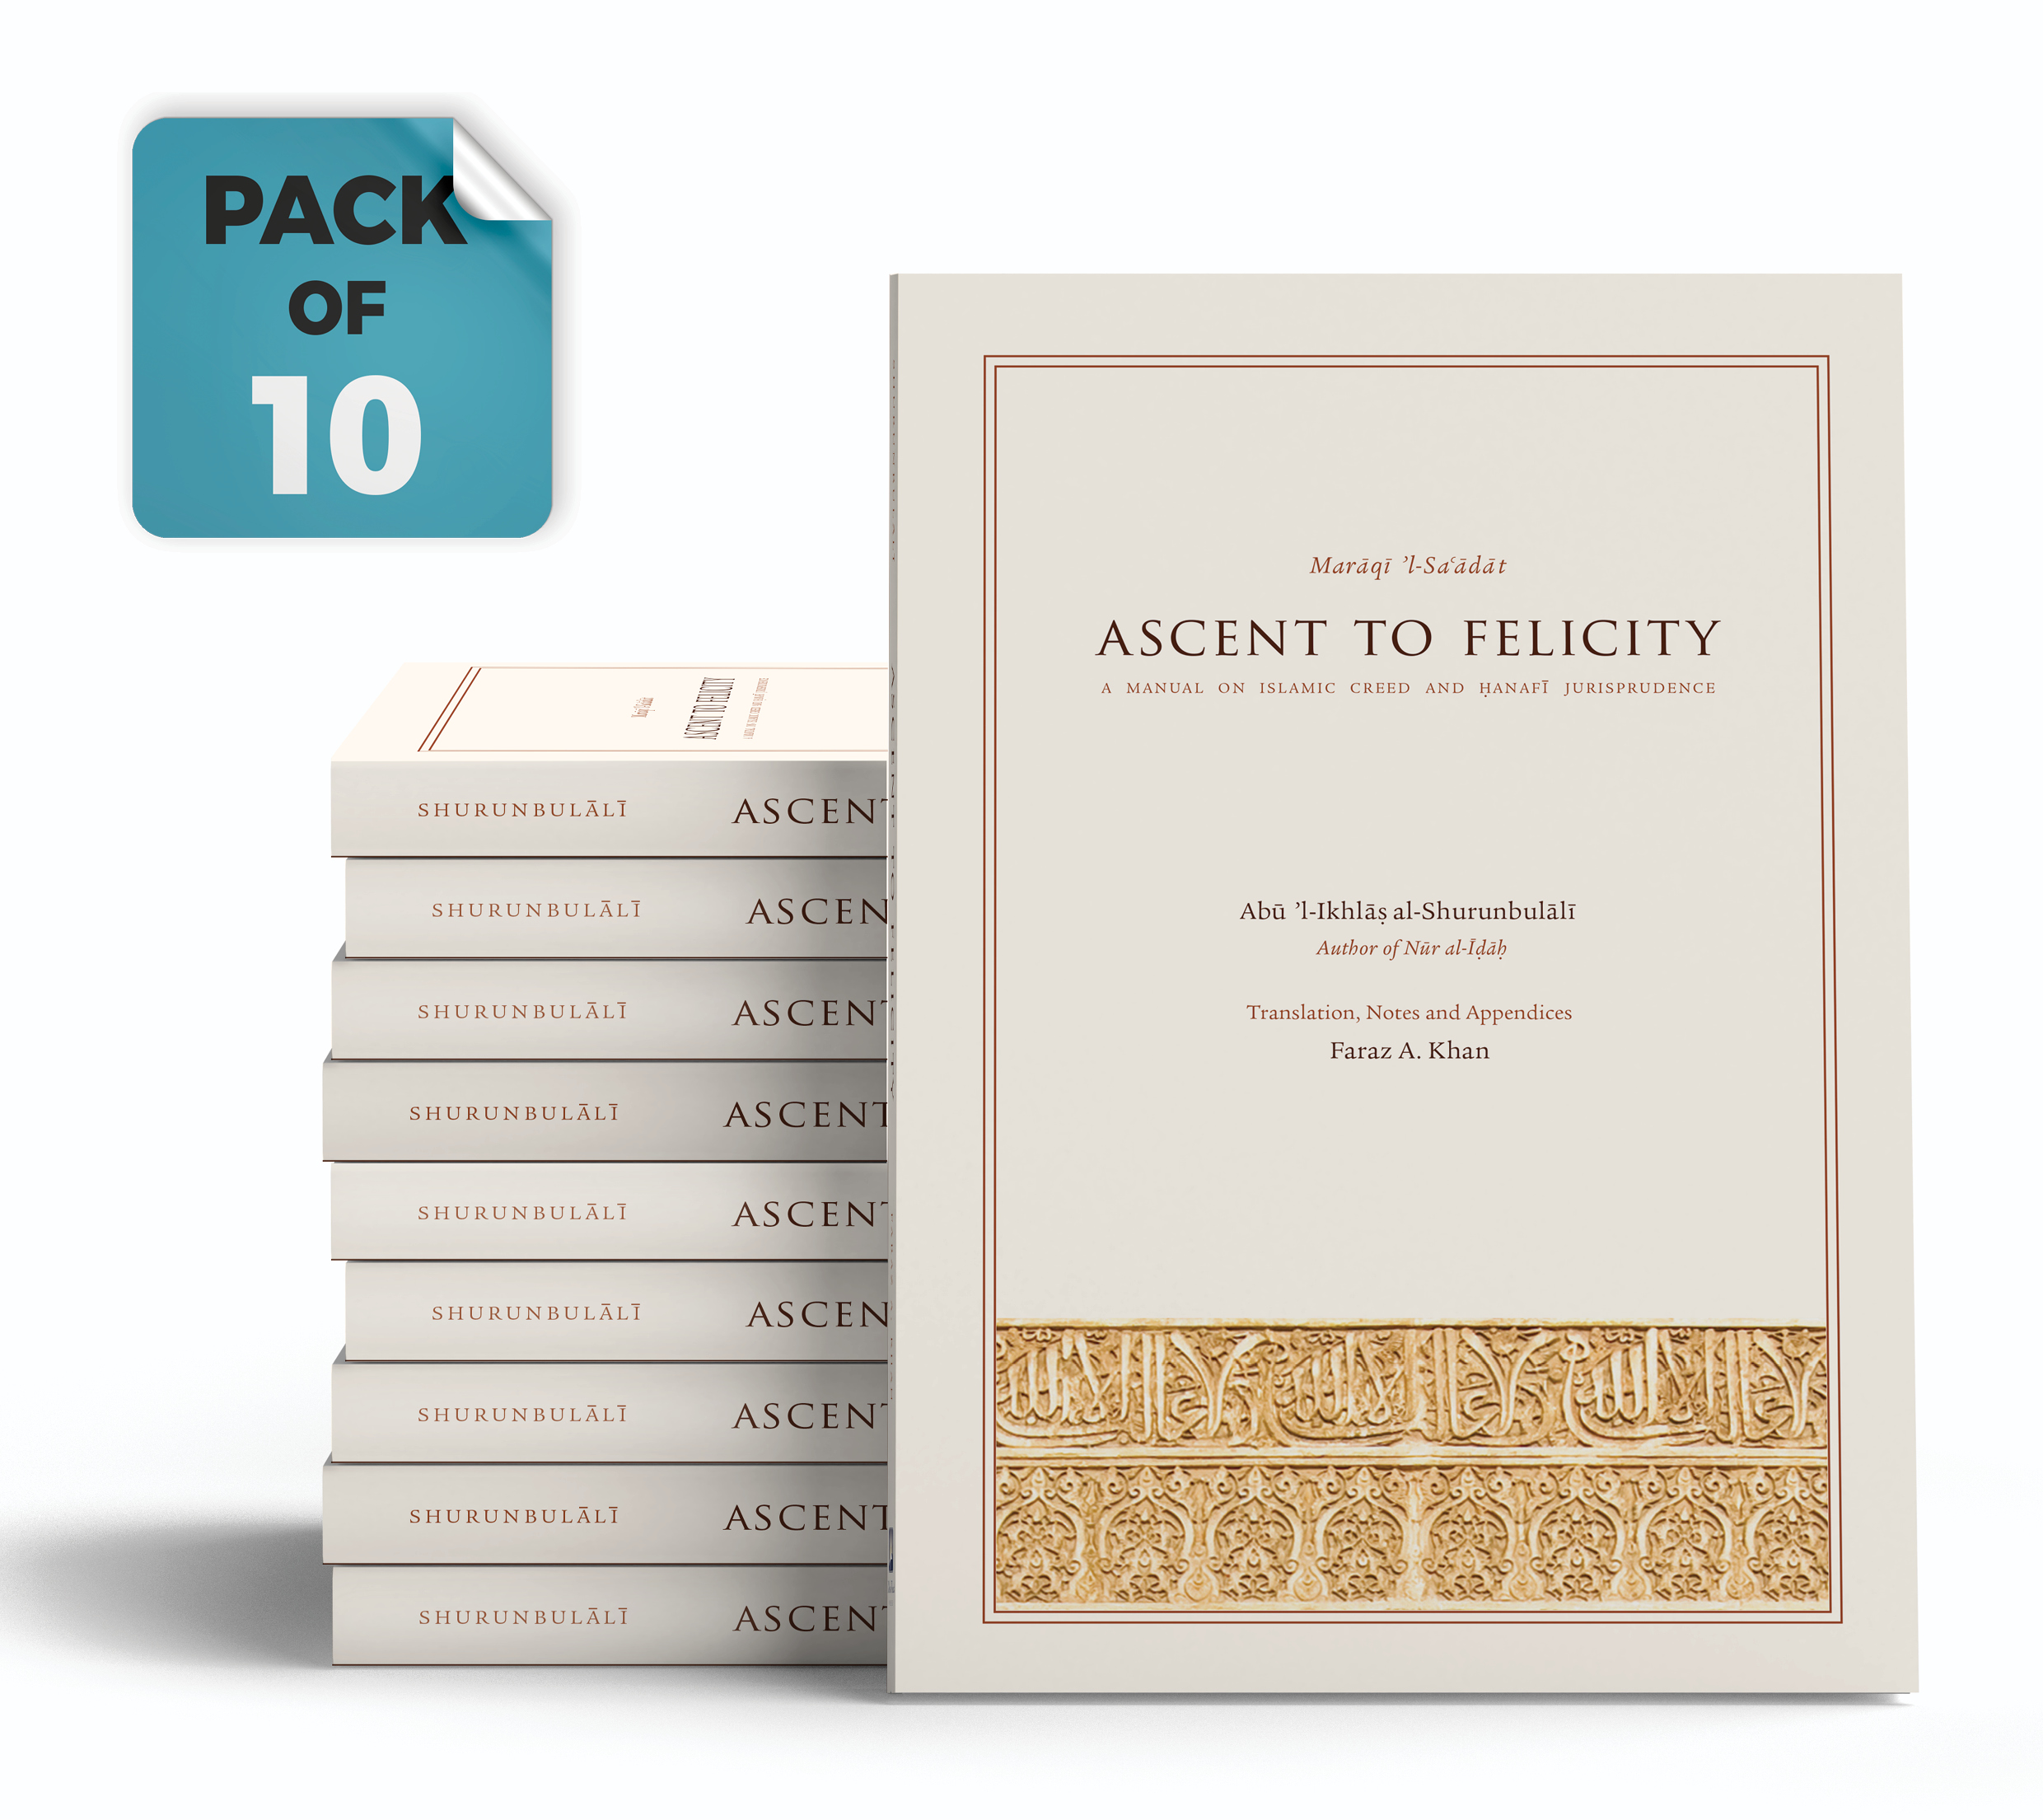 Ascent to Felicity – Pack of 10